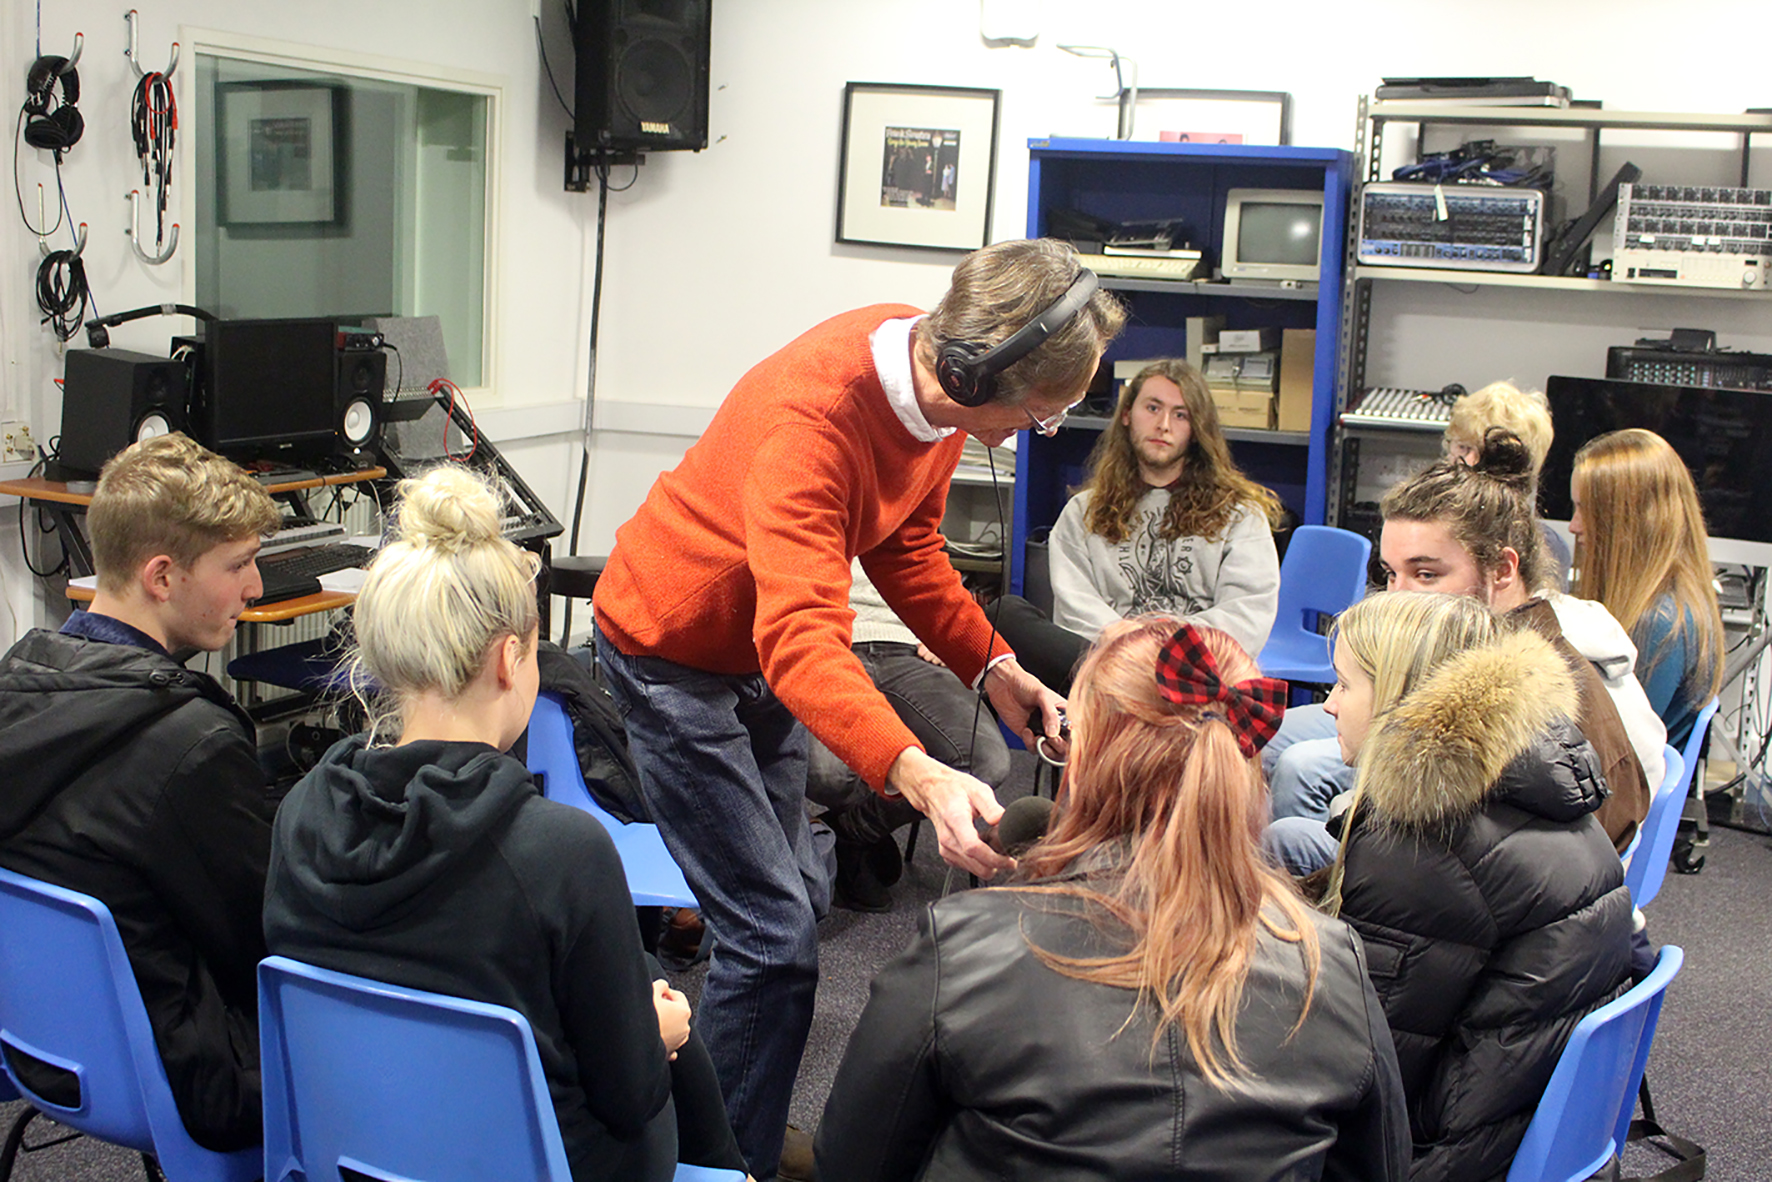 Radio 1 is not in tune with us' - Priestley College